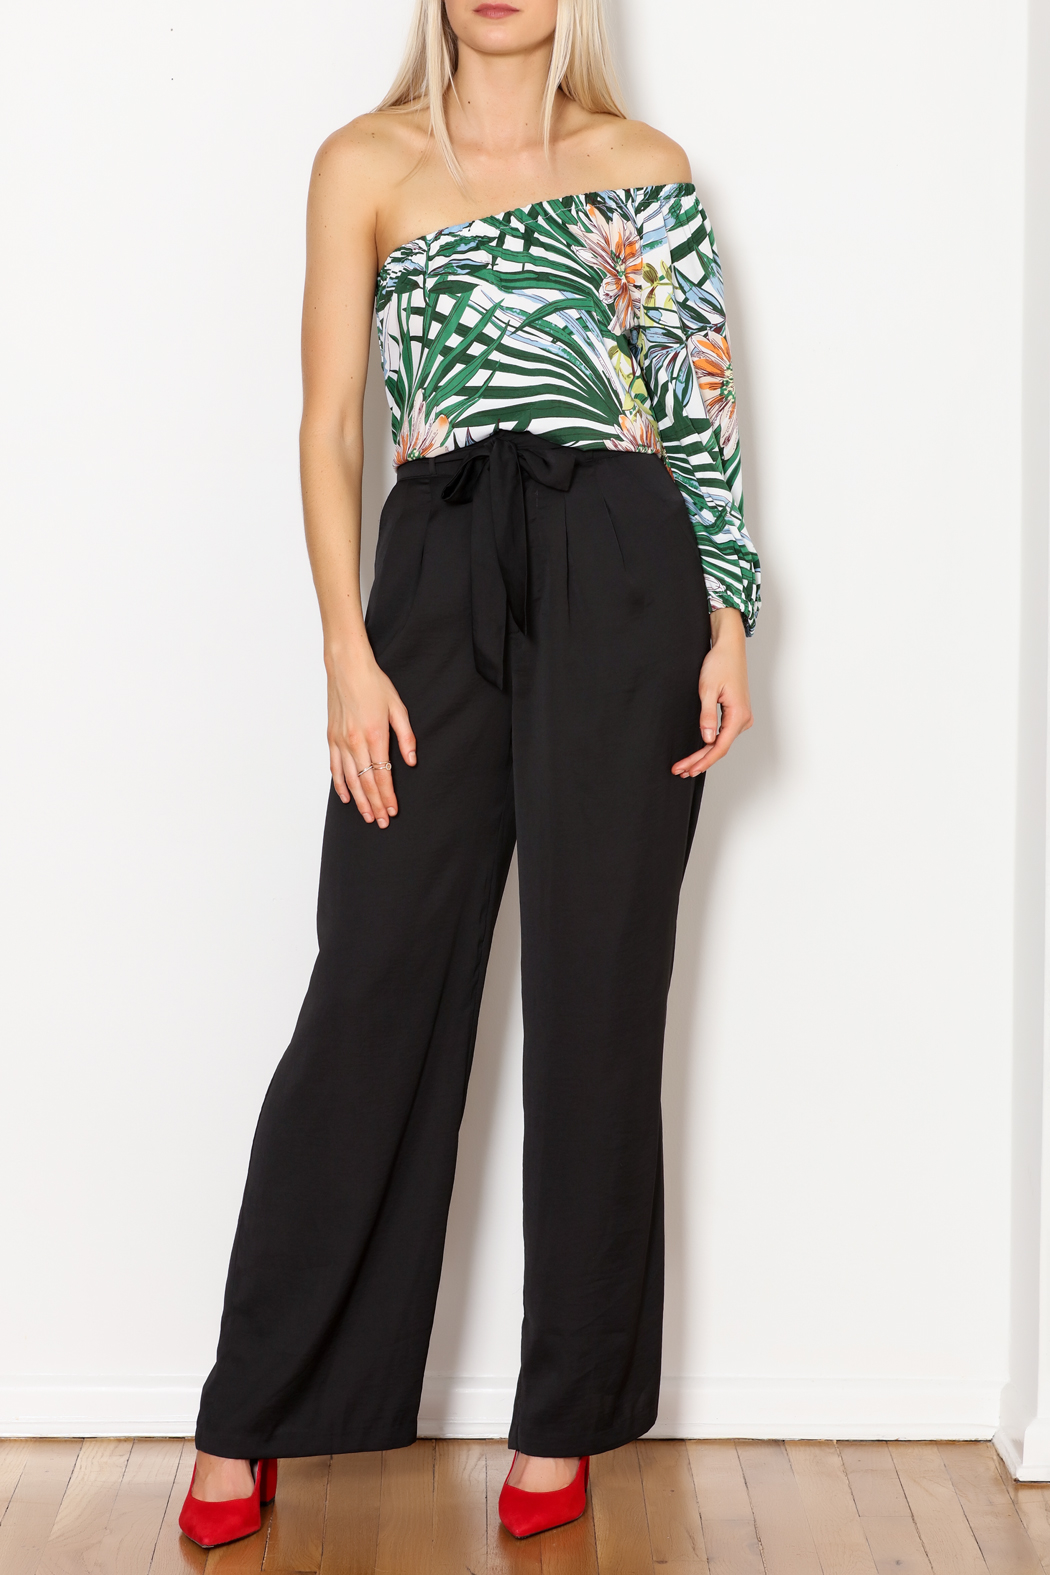 lucca couture Palm Print Top - Side Cropped Image